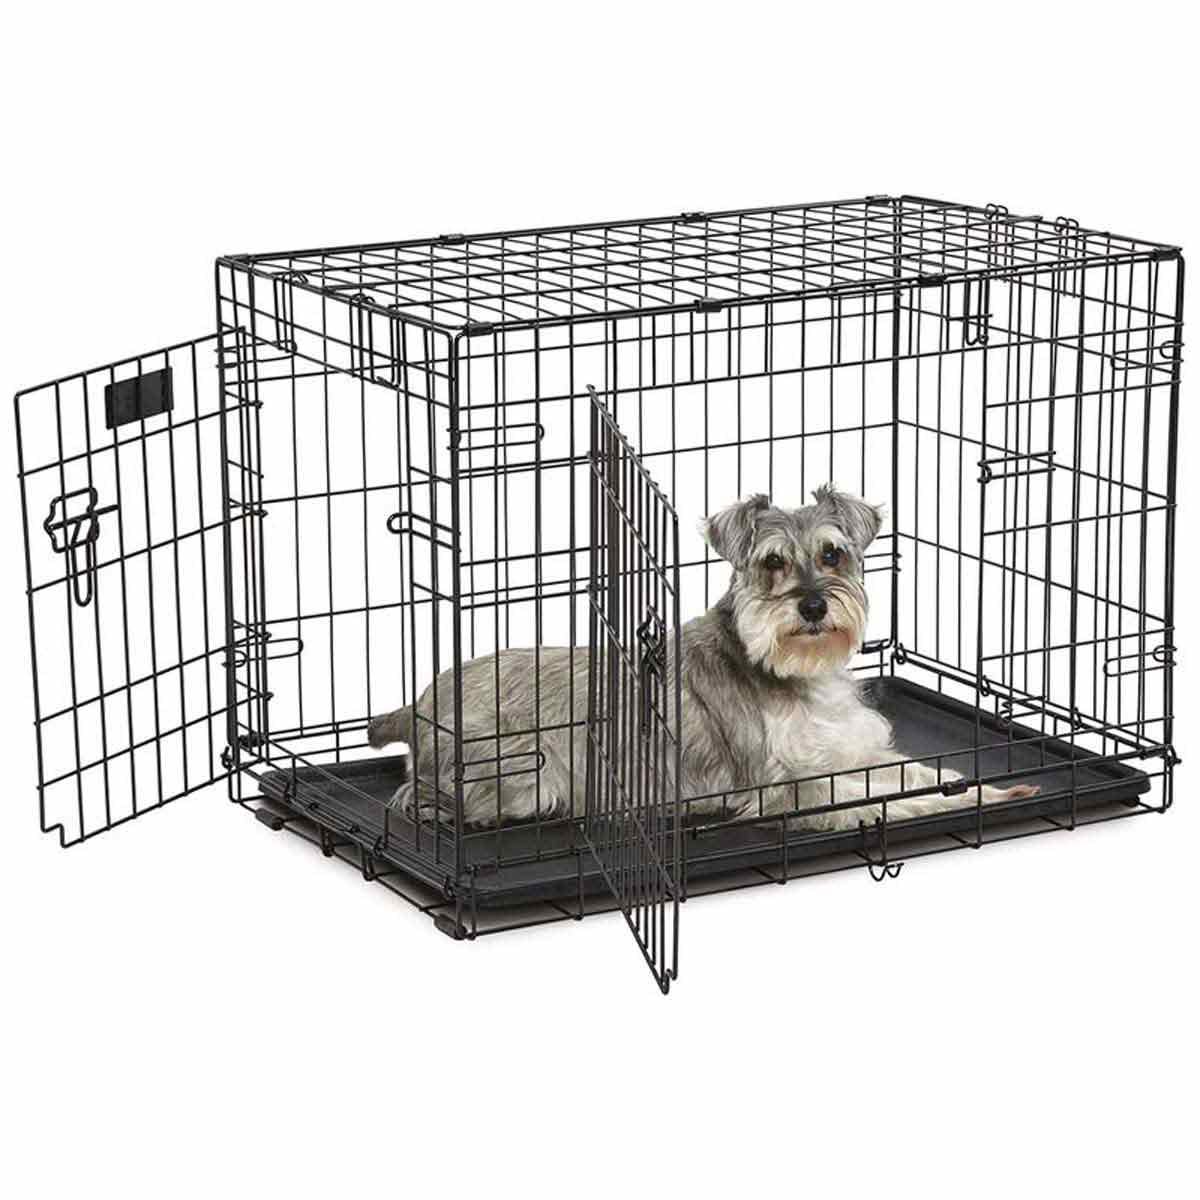 31 inches by 20 inches by 21 inches - Midwest ConTour Crate Double Door for Dogs